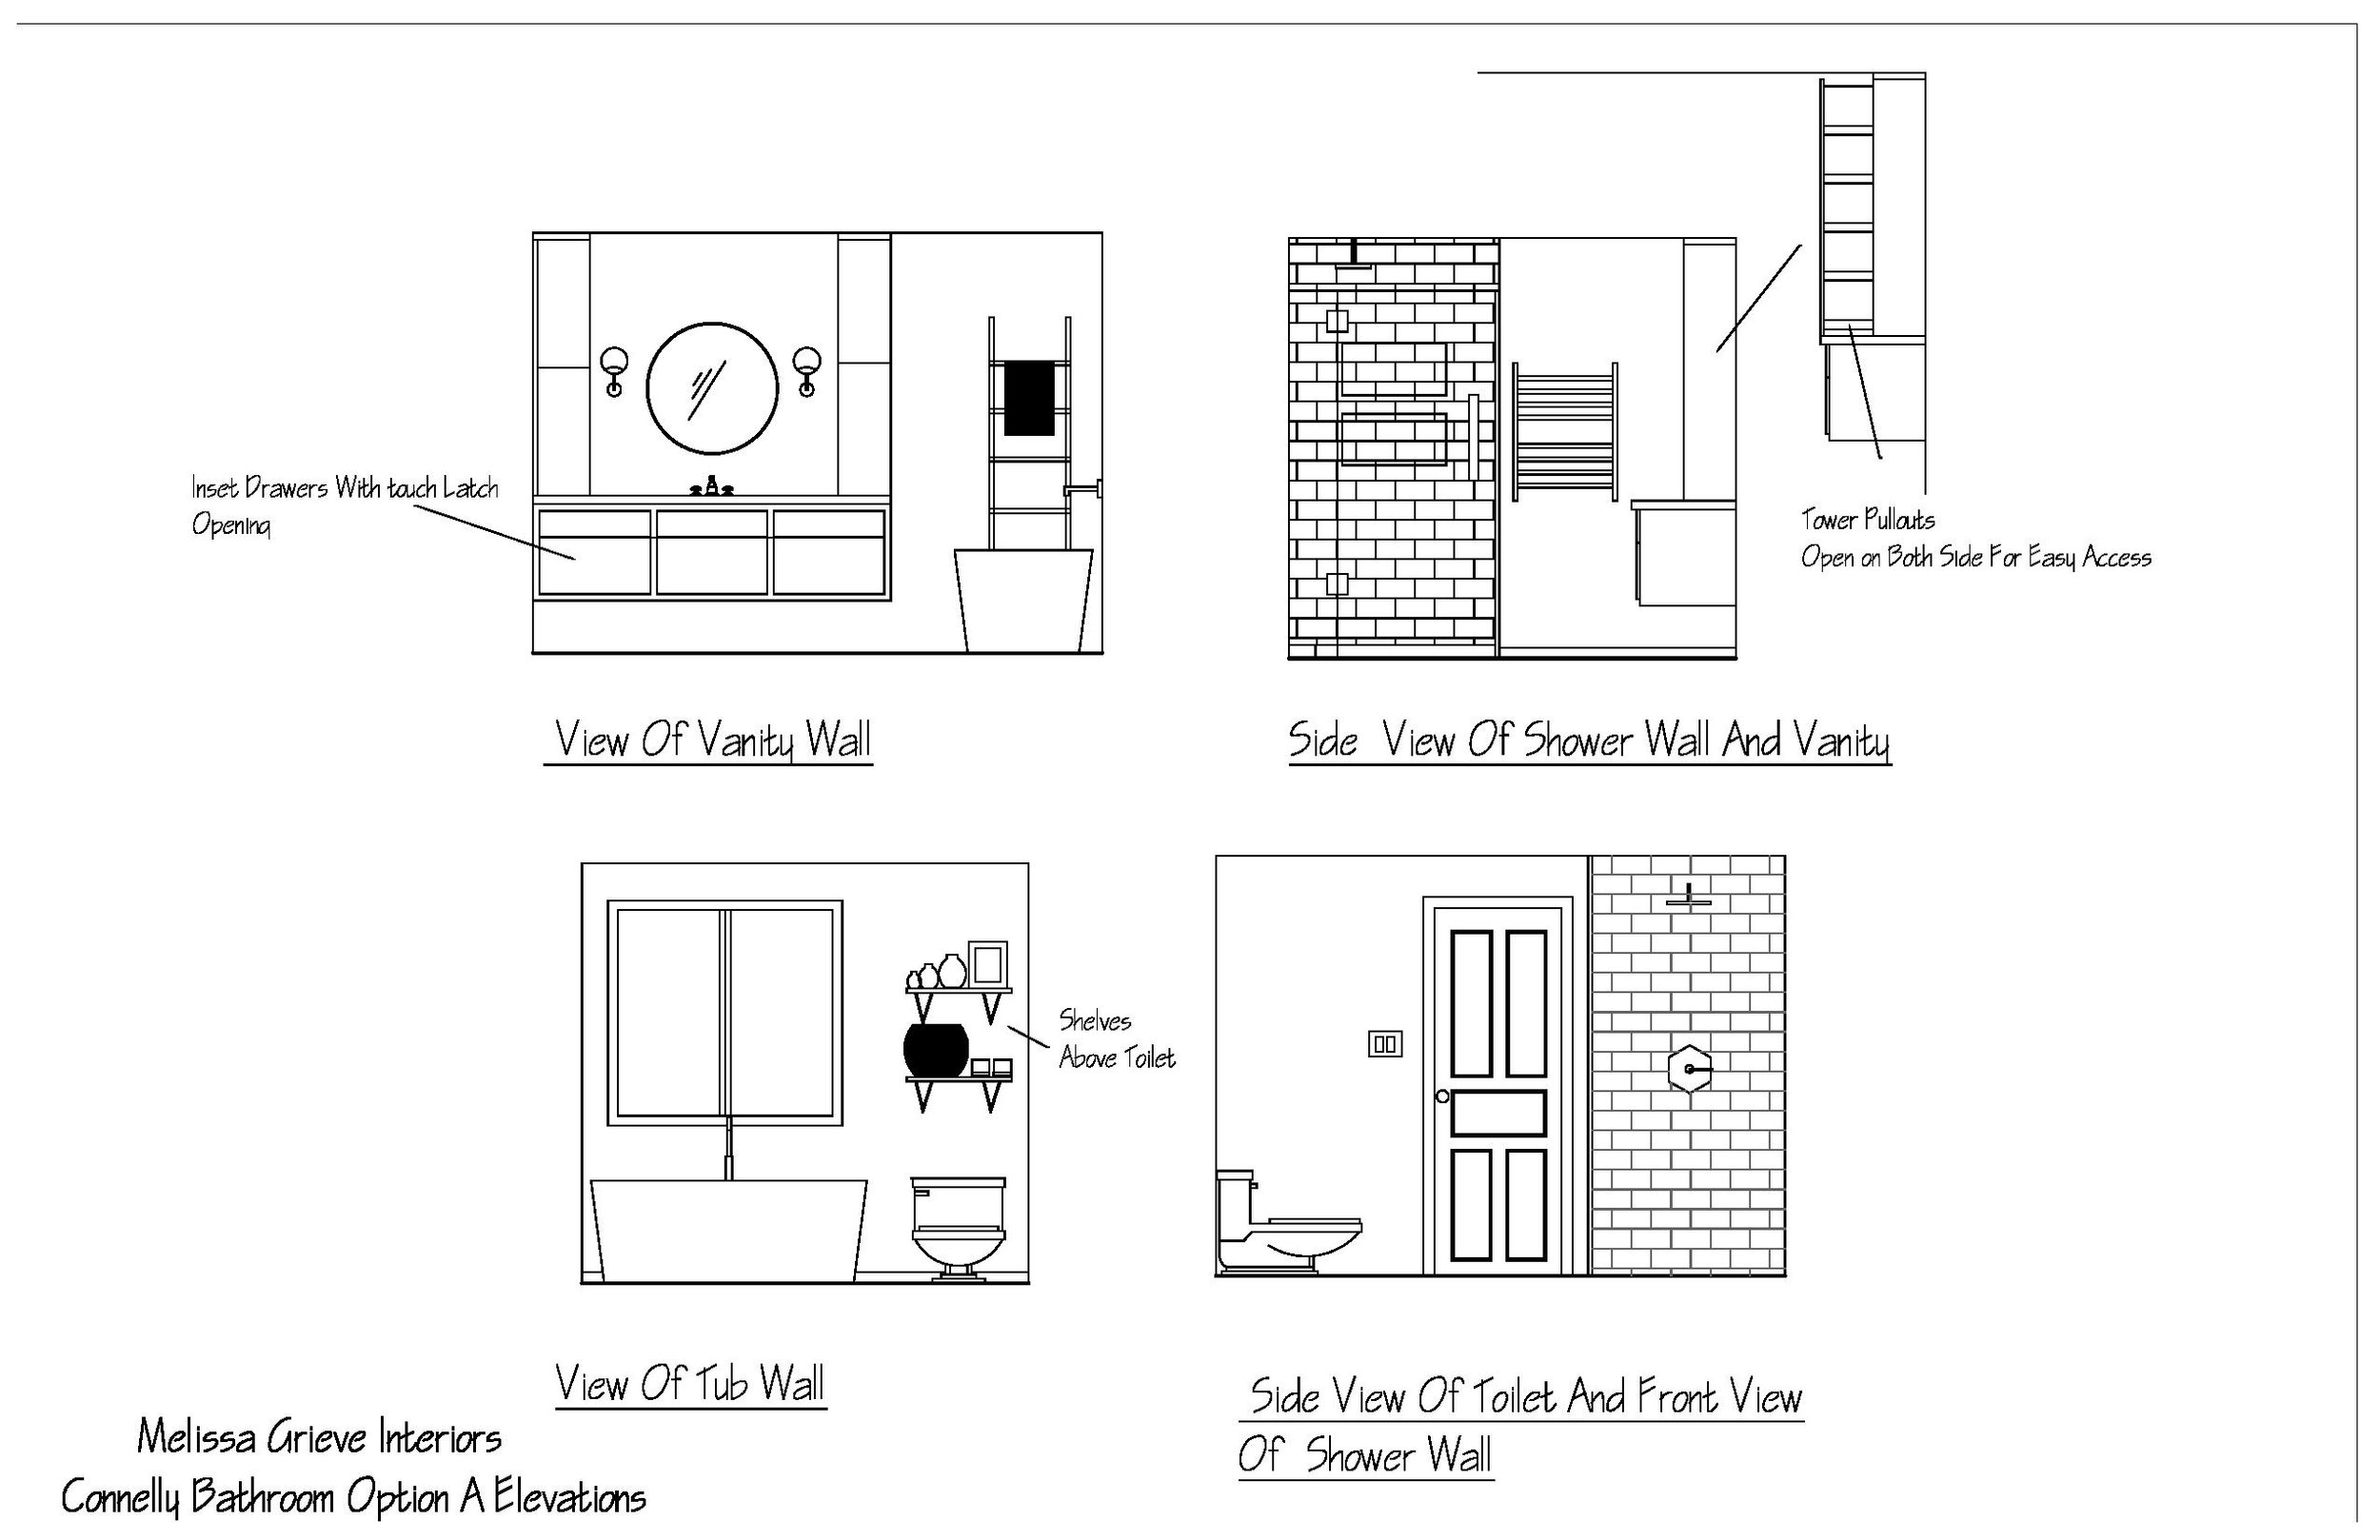 Connelly+Bathroom+Option+A+Elevations+Revised-page-001.jpg